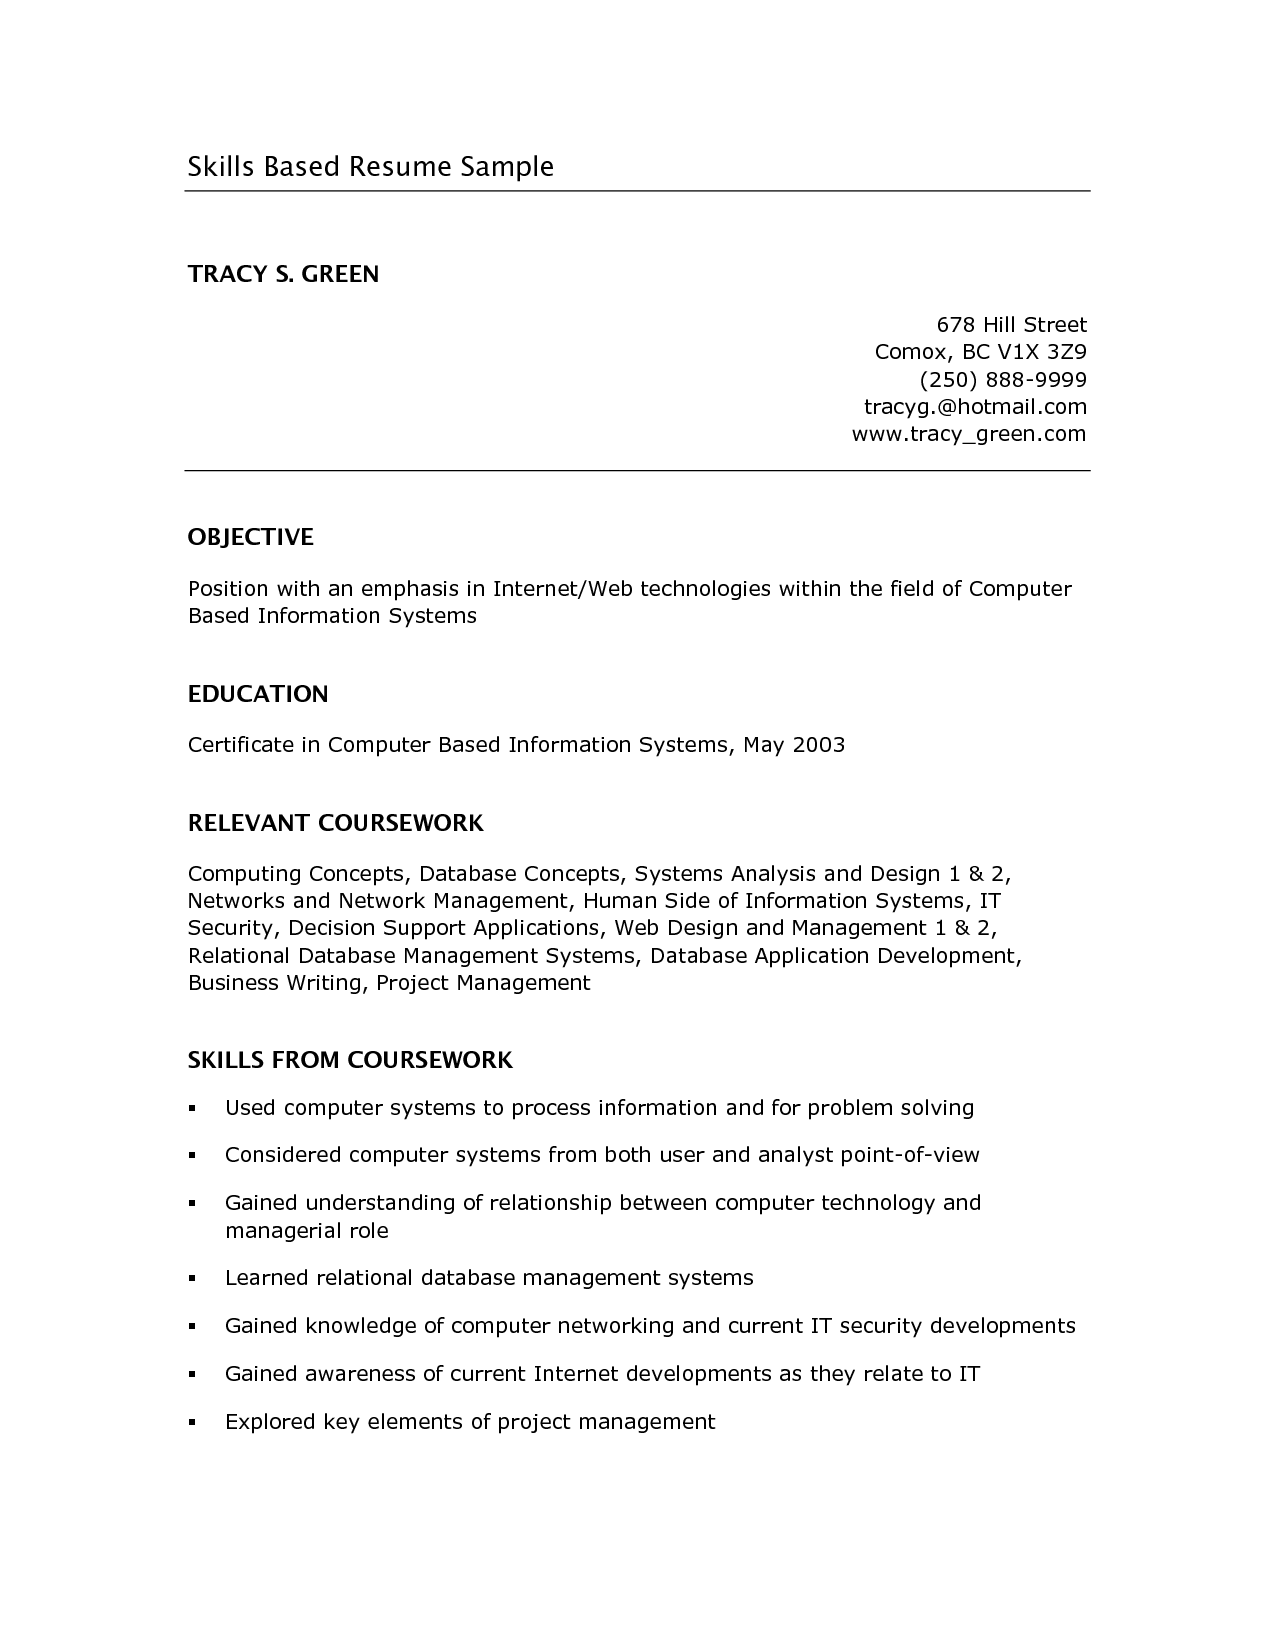 Skills Based Resume Example Google Search School